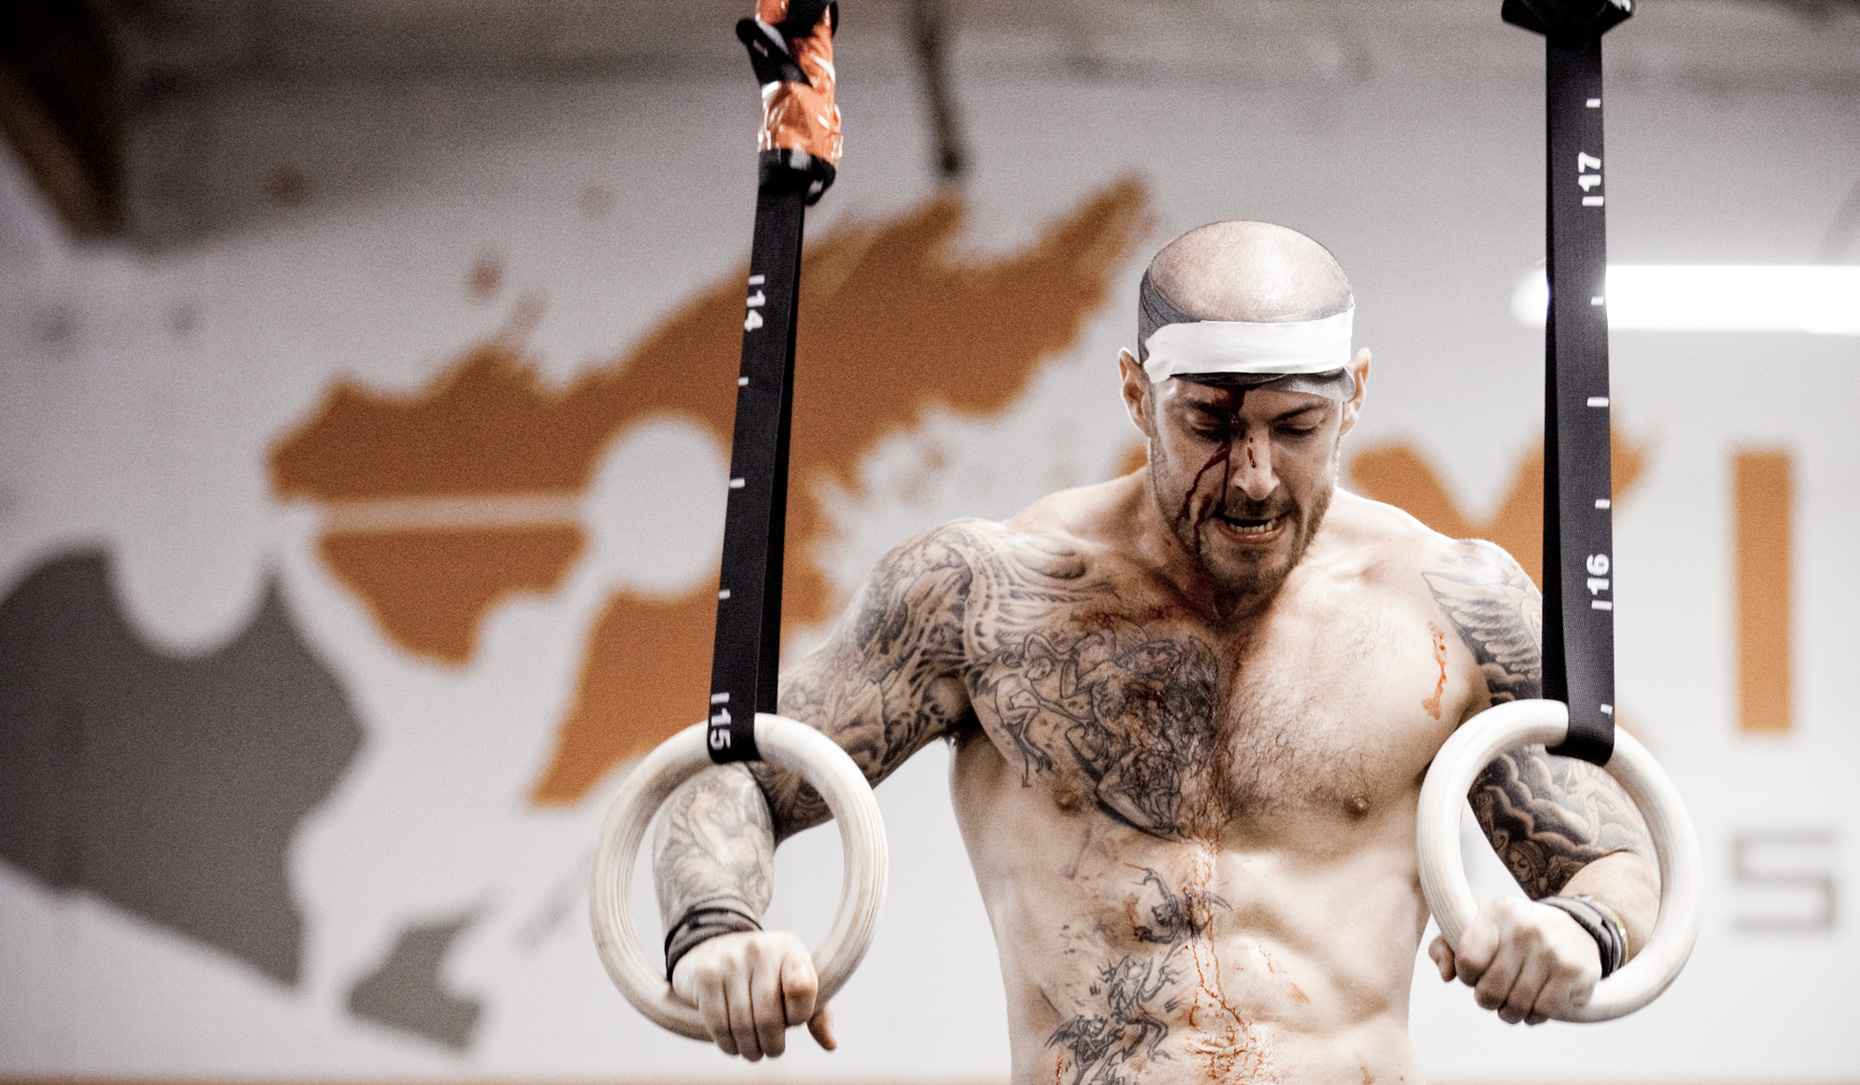 Los Angeles Sports Photography, Michael Brian, Bloodied, Crossfit athlete, muscle up